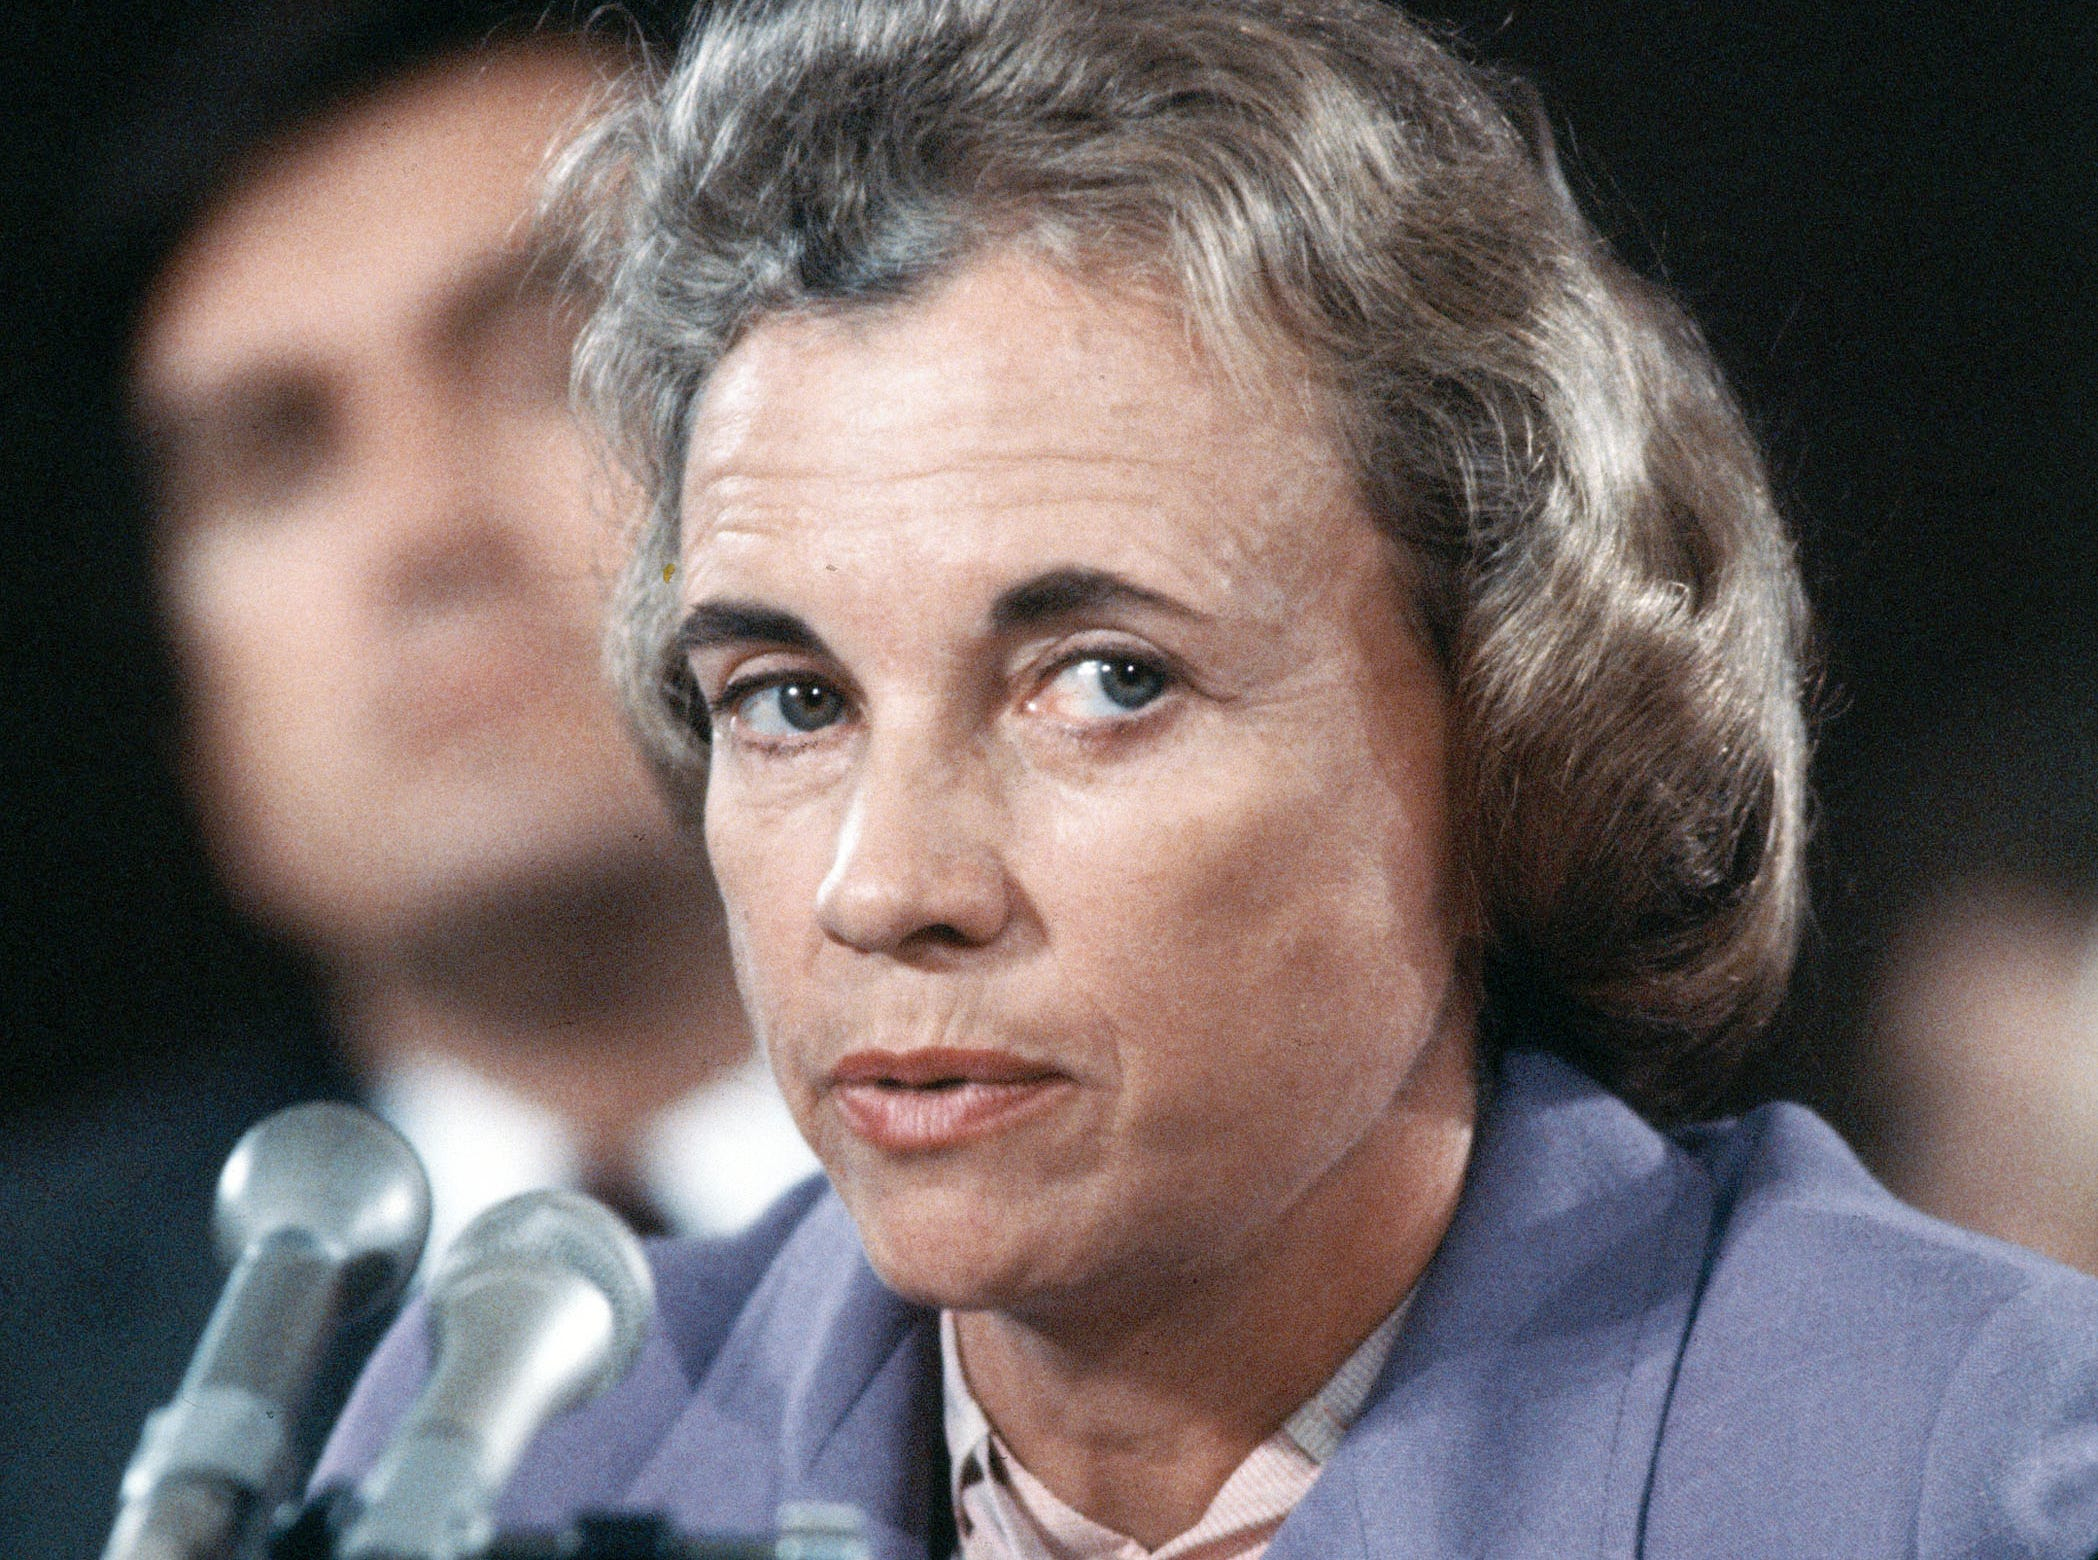 Supreme Court nominee Sandra Day O'Connor is shown during her confirmation hearings before the Senate Judiciary Committee, Sept. 9, 1981.